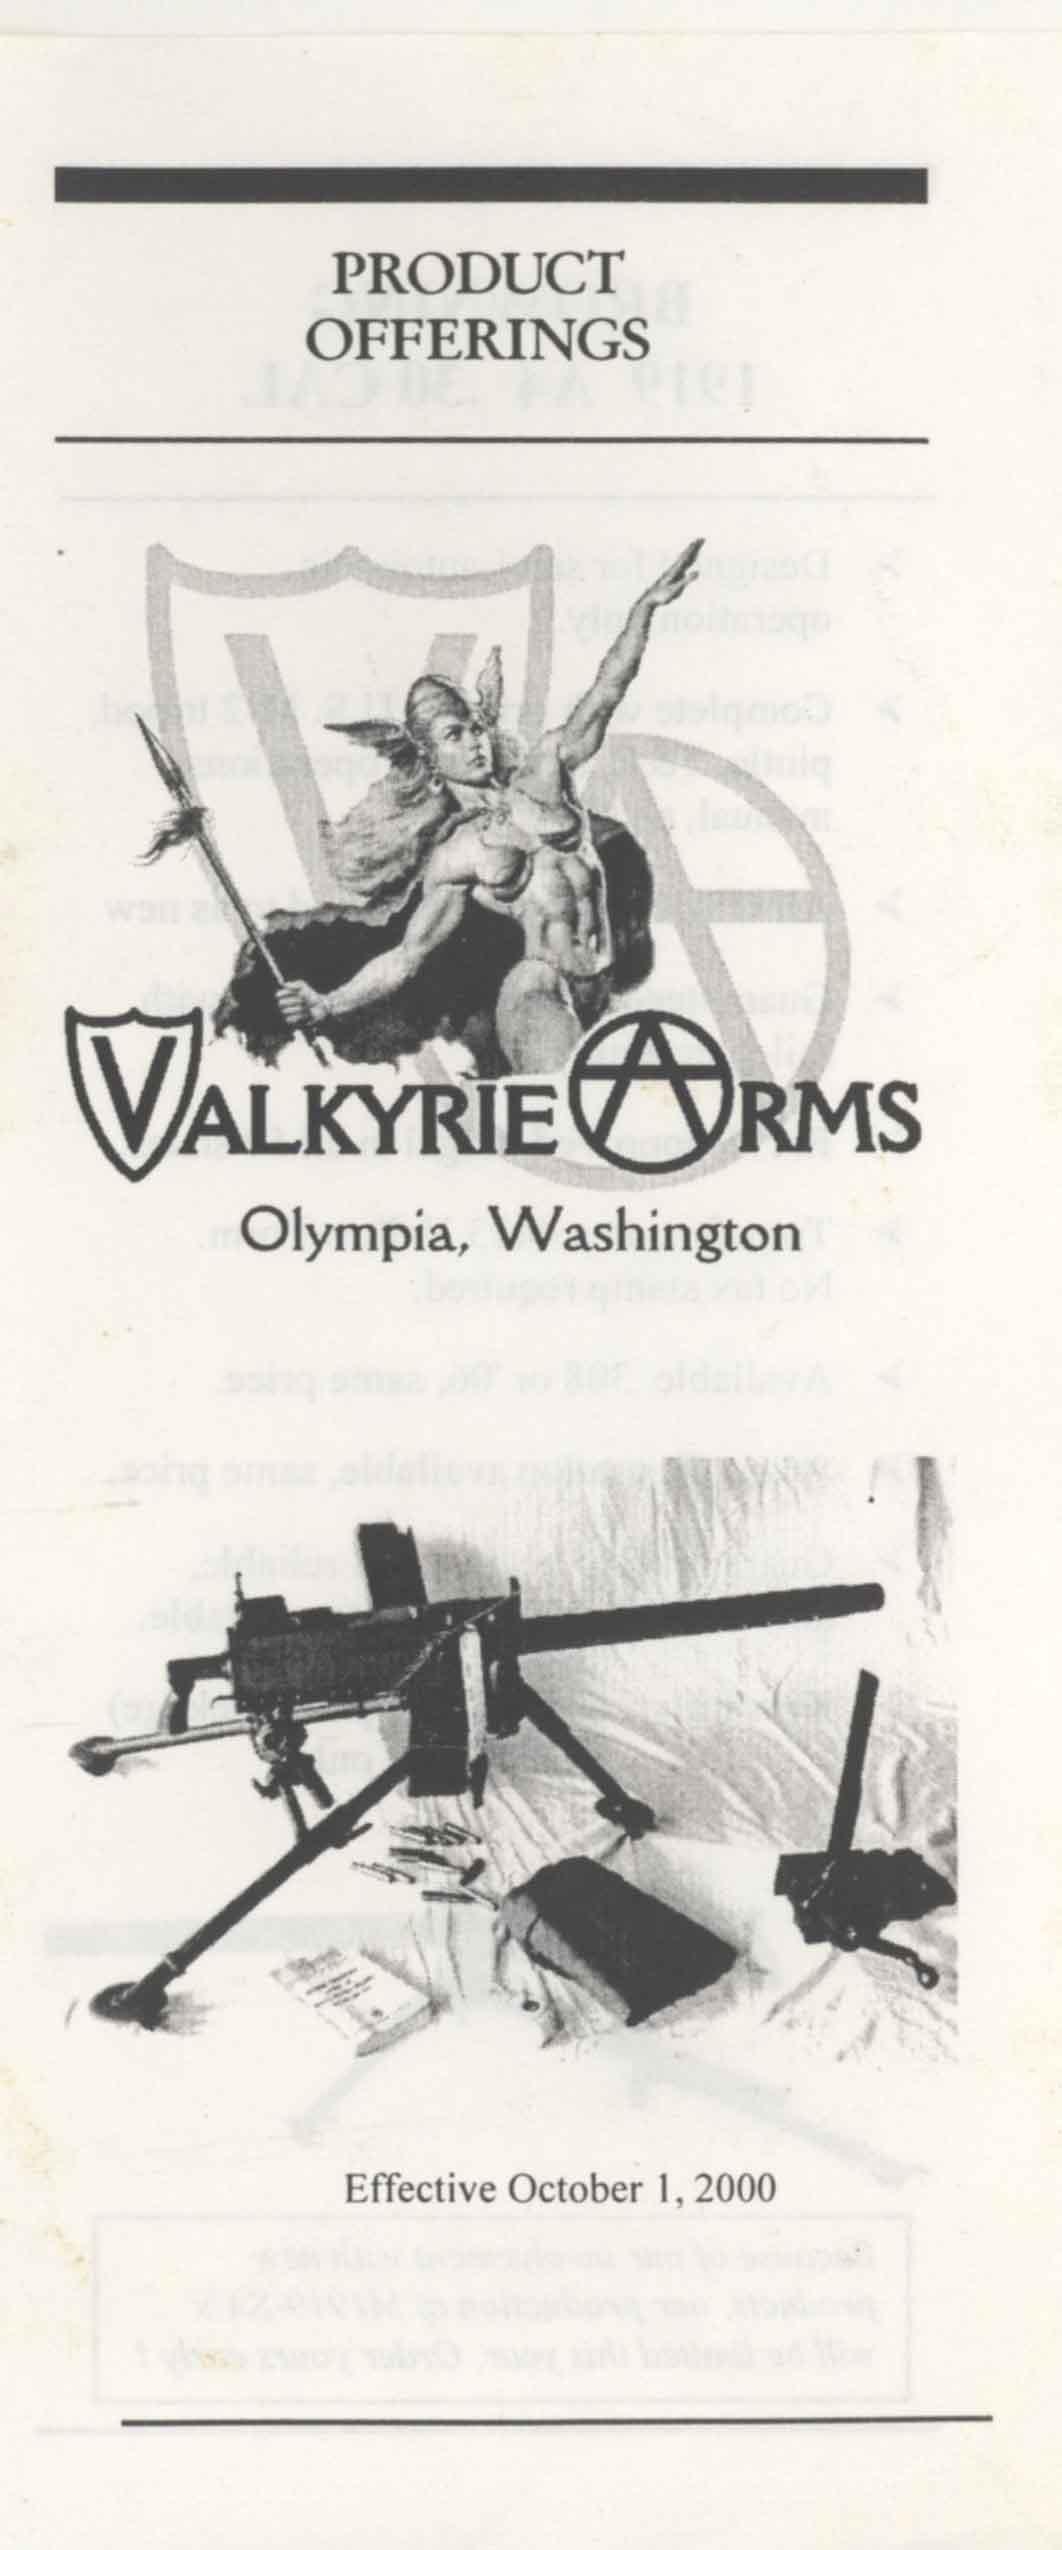 Valkyrie Arms 2000 Machine Gun Flyer